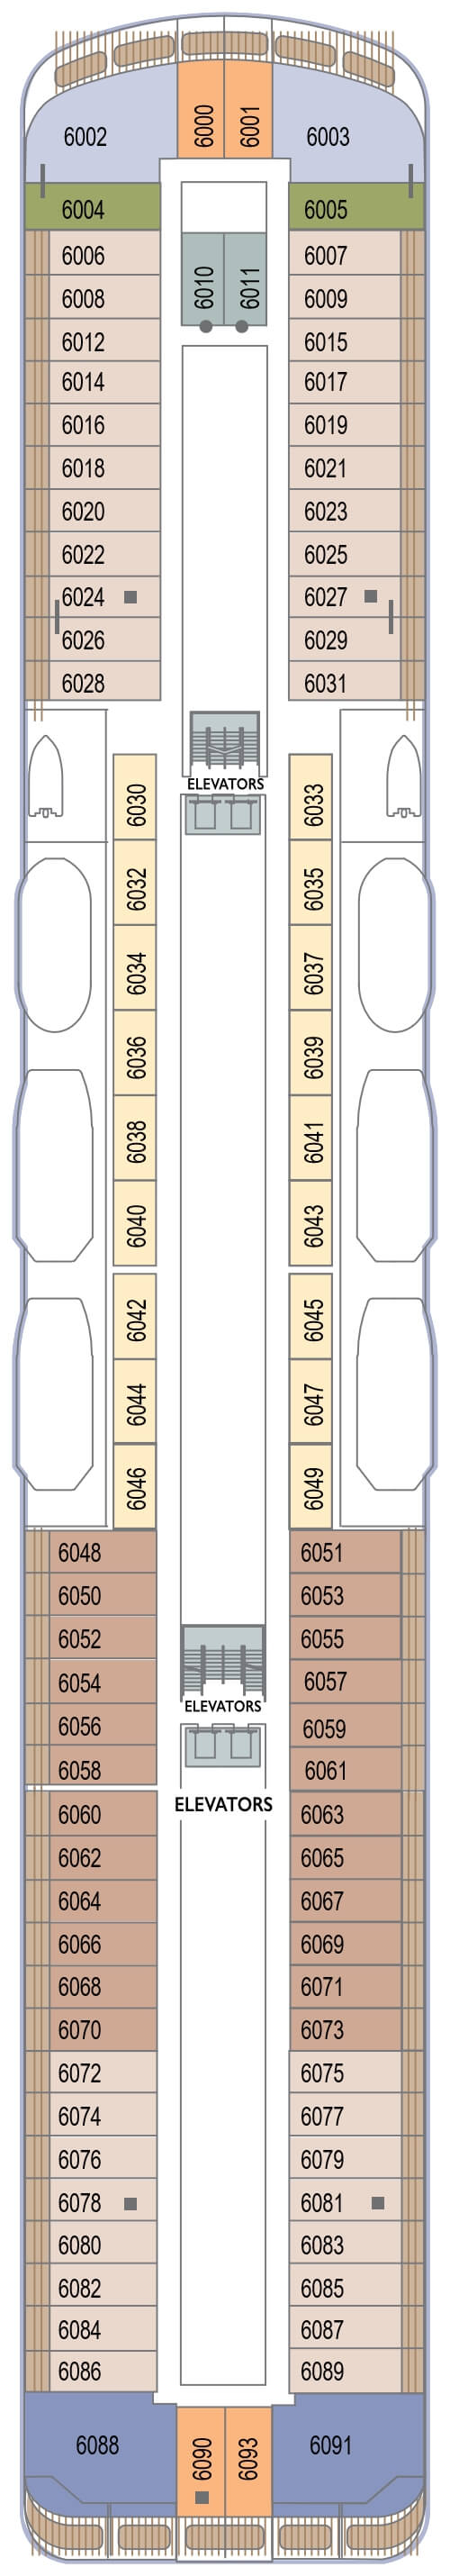 Azamara Pursuit Deck 6 layout